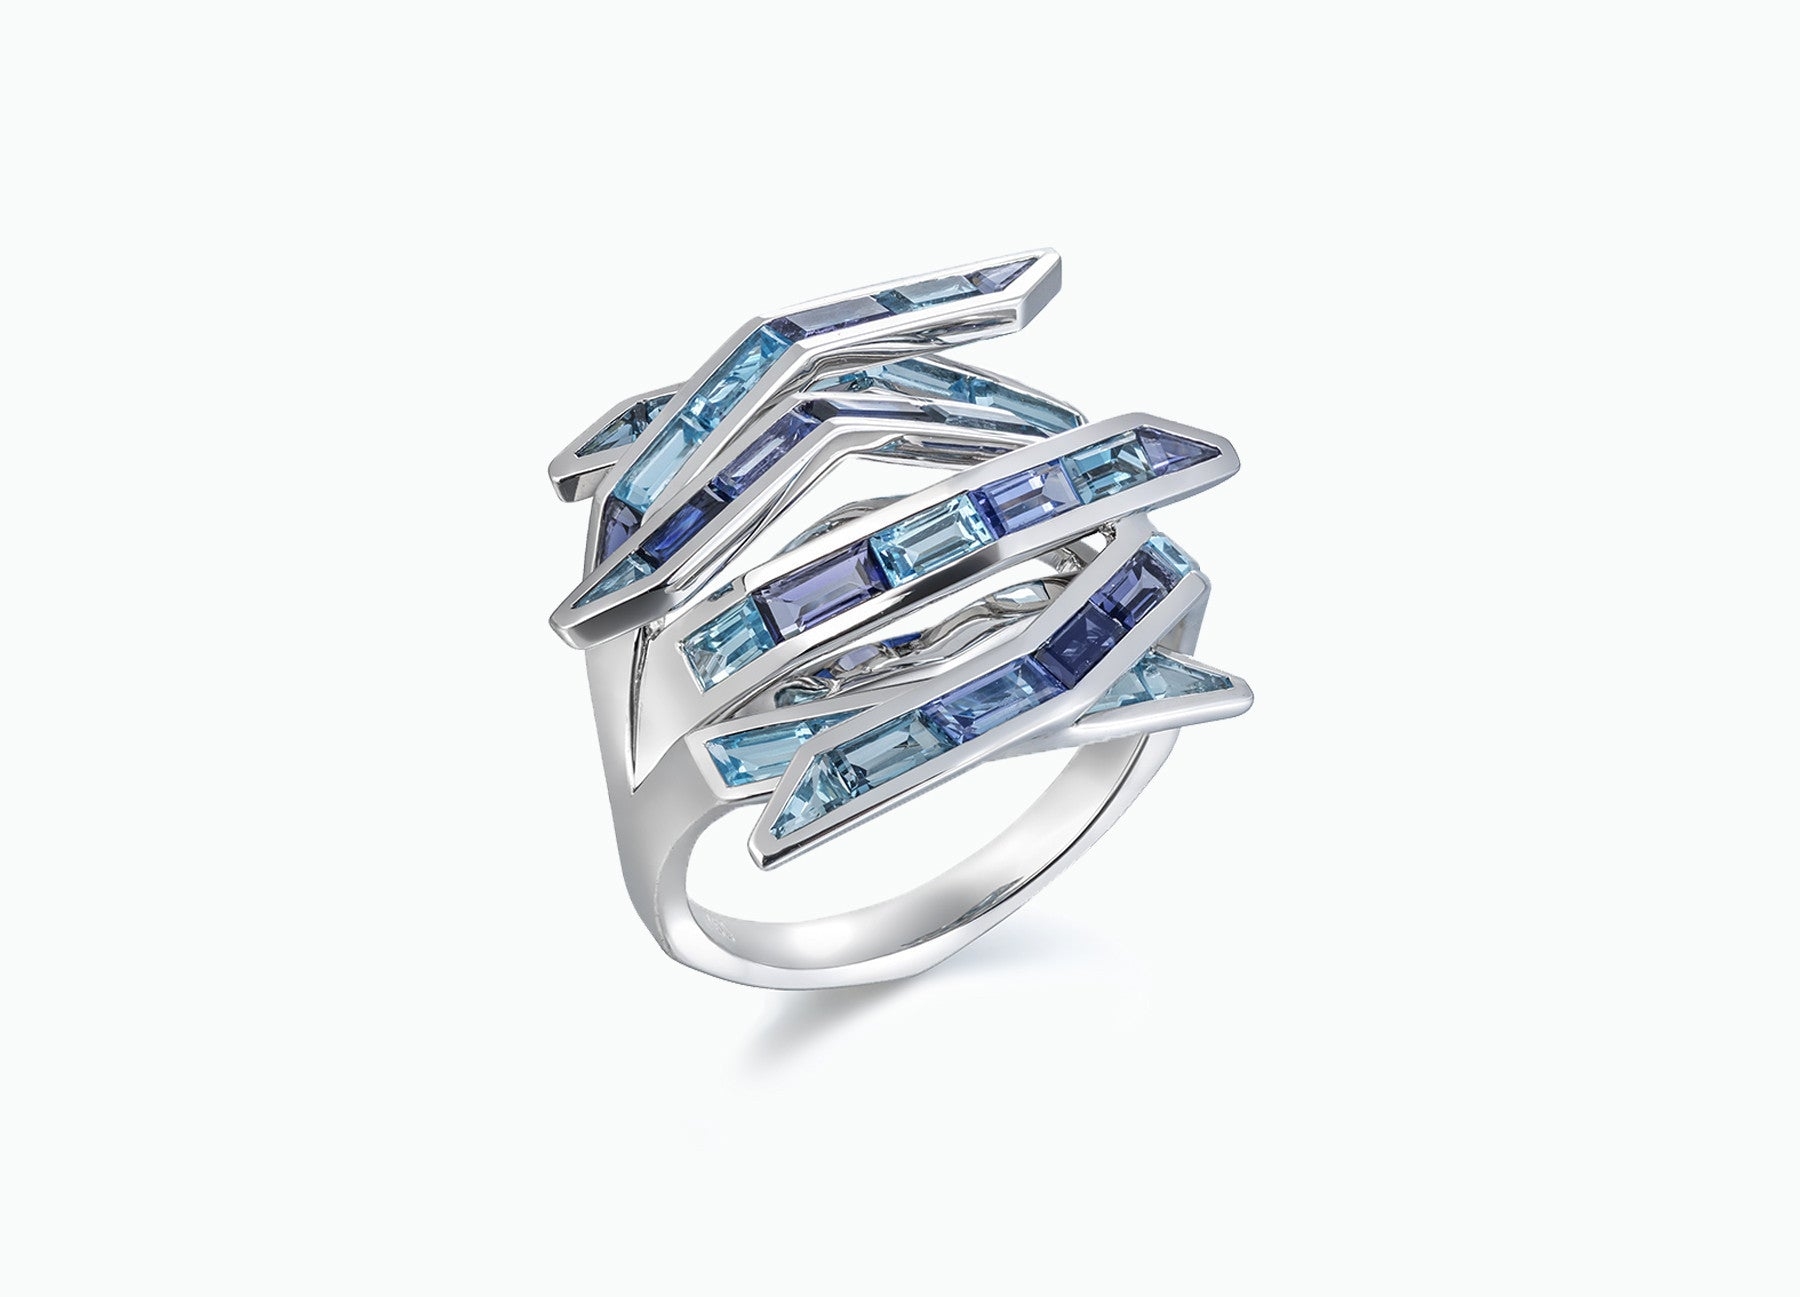 Blue Gem Bombay Ring in 18K White Gold by Tomasz Donocik side view